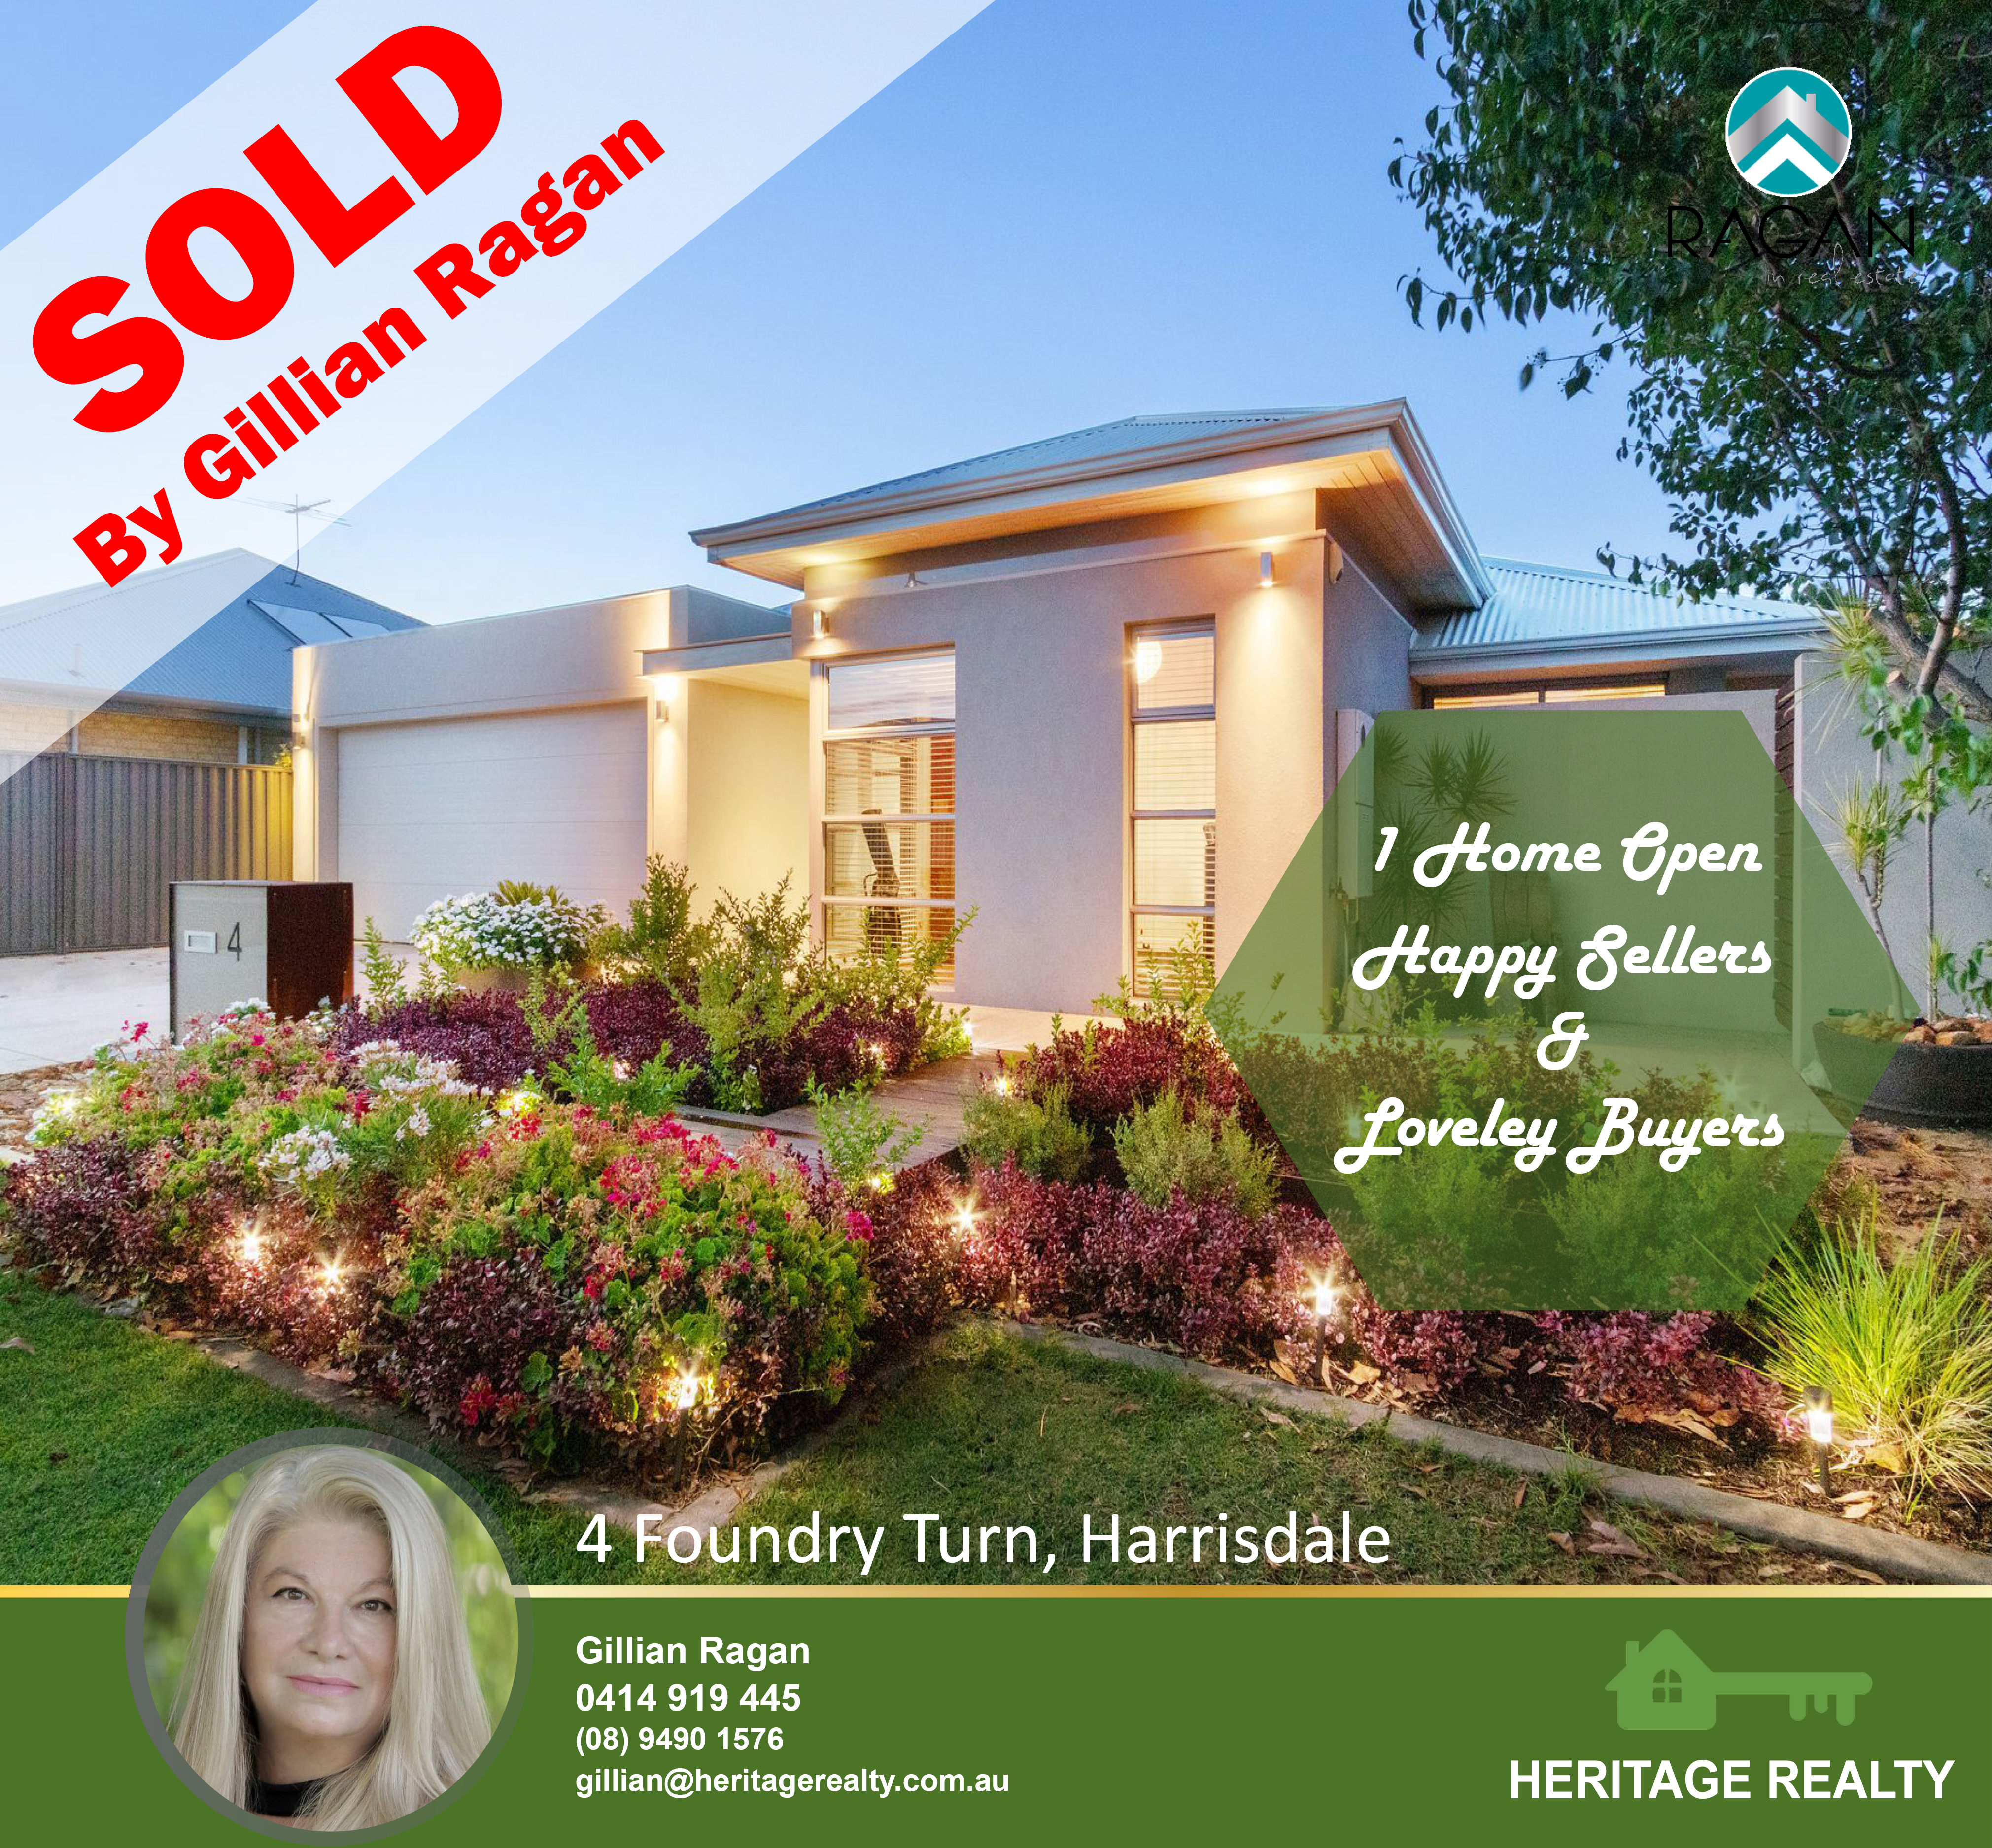 Buyer of a house in Harrisdale